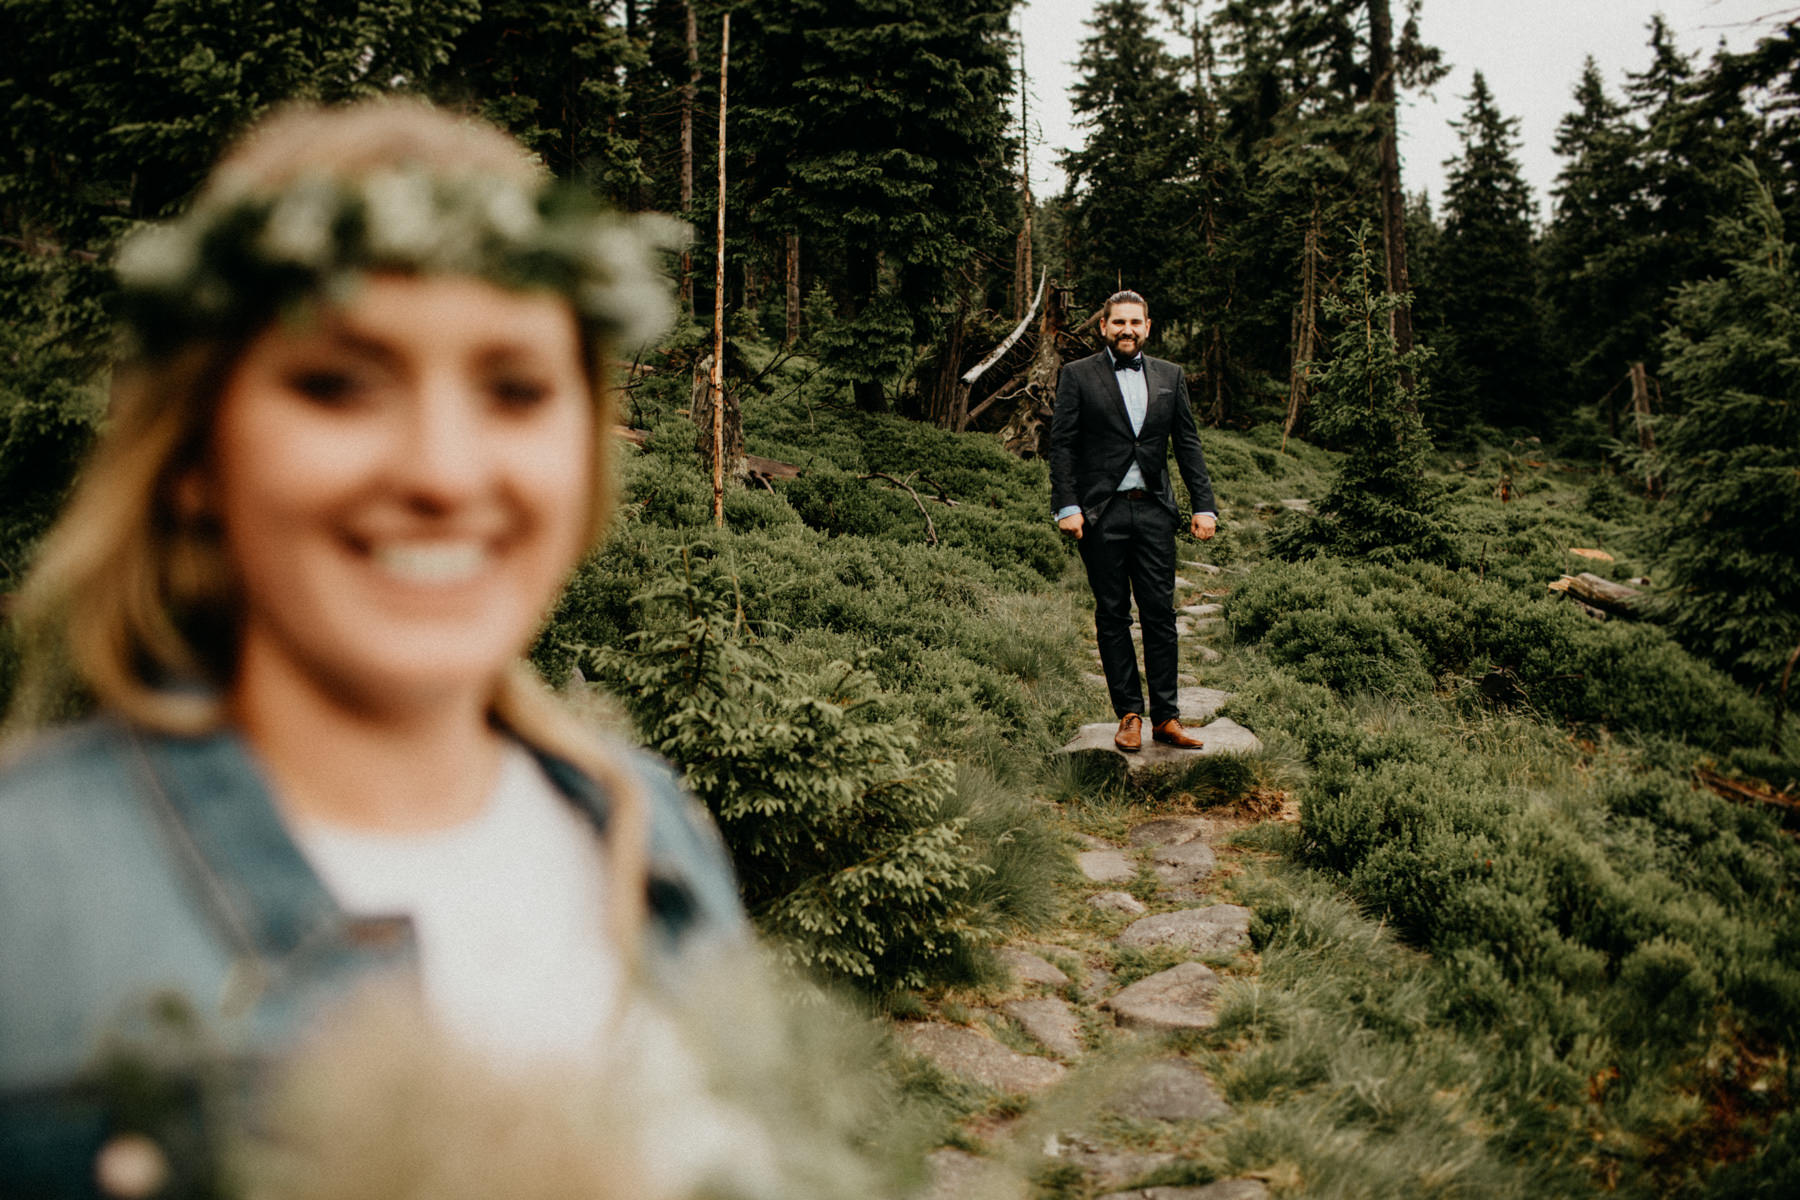 groom looking at his bride in the forest